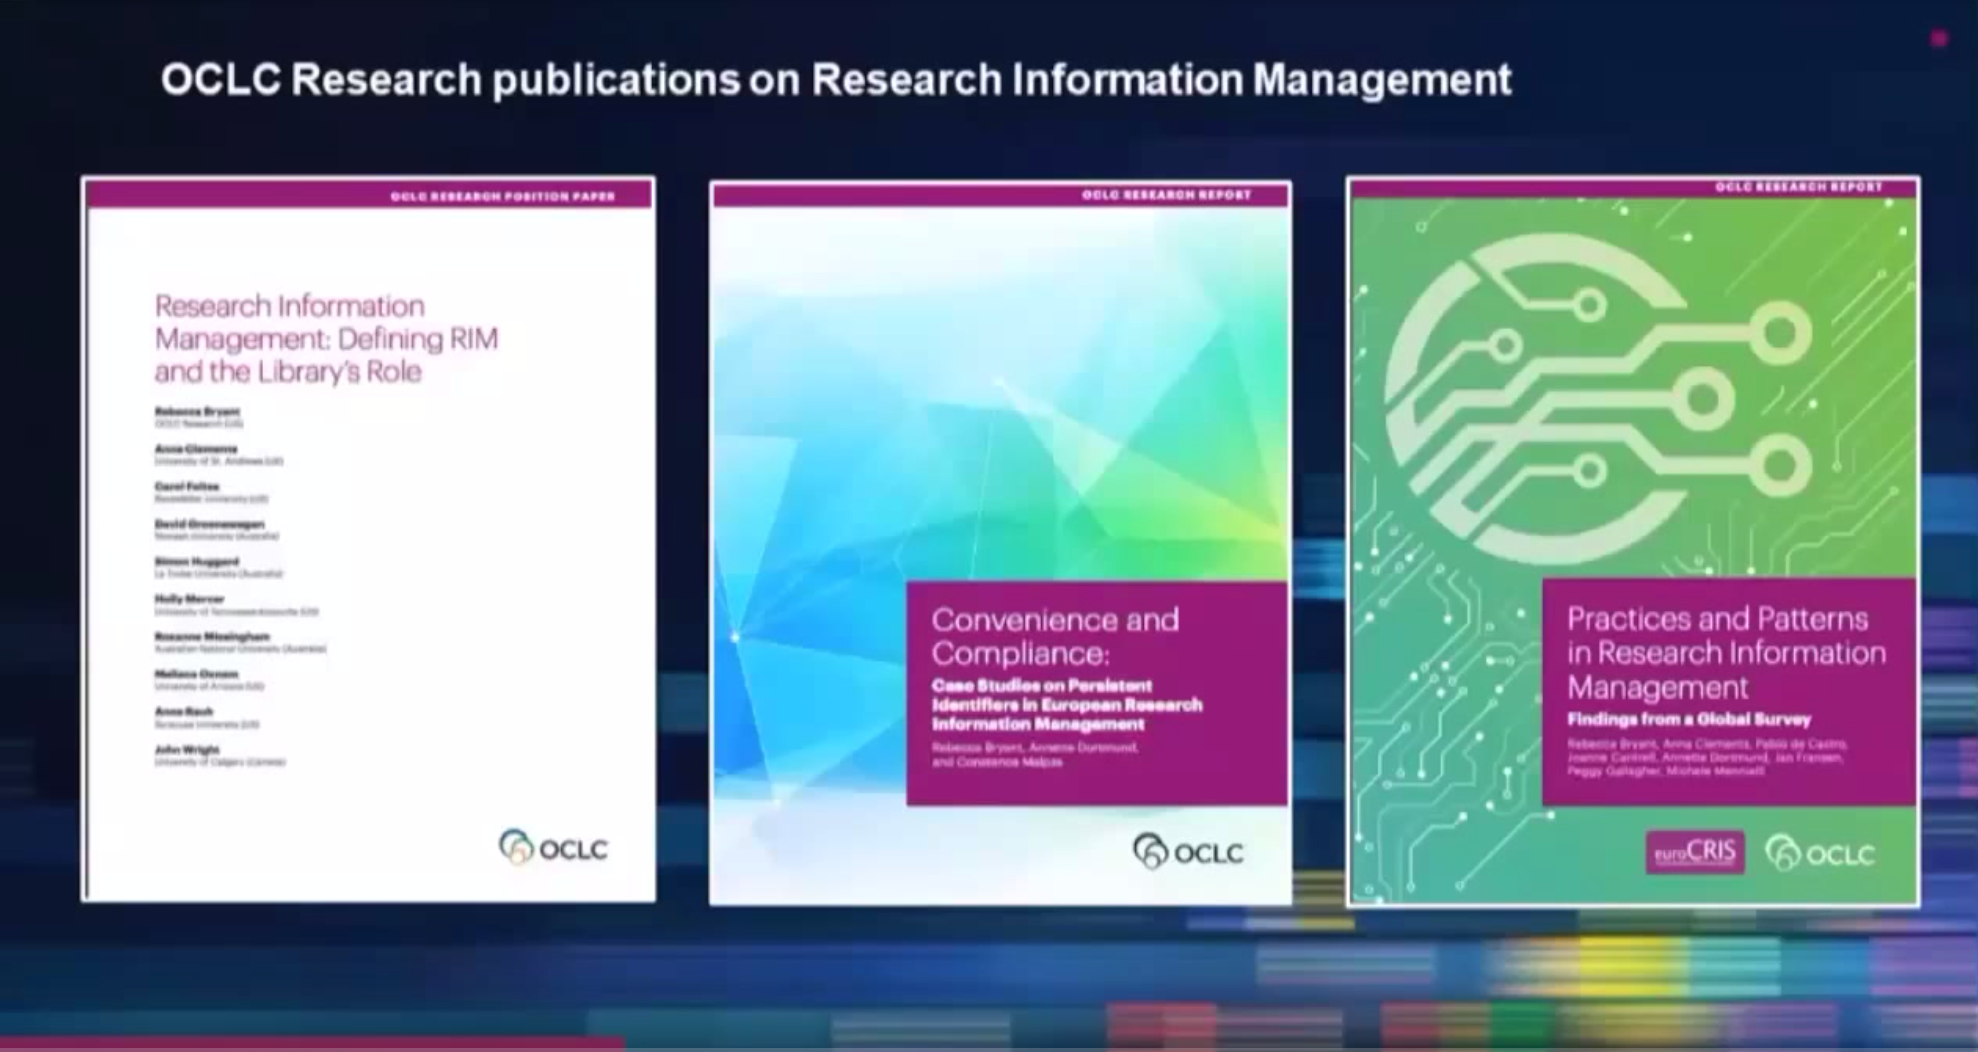 Practices and Patterns in Research Information Management: Findings from a Global Survey